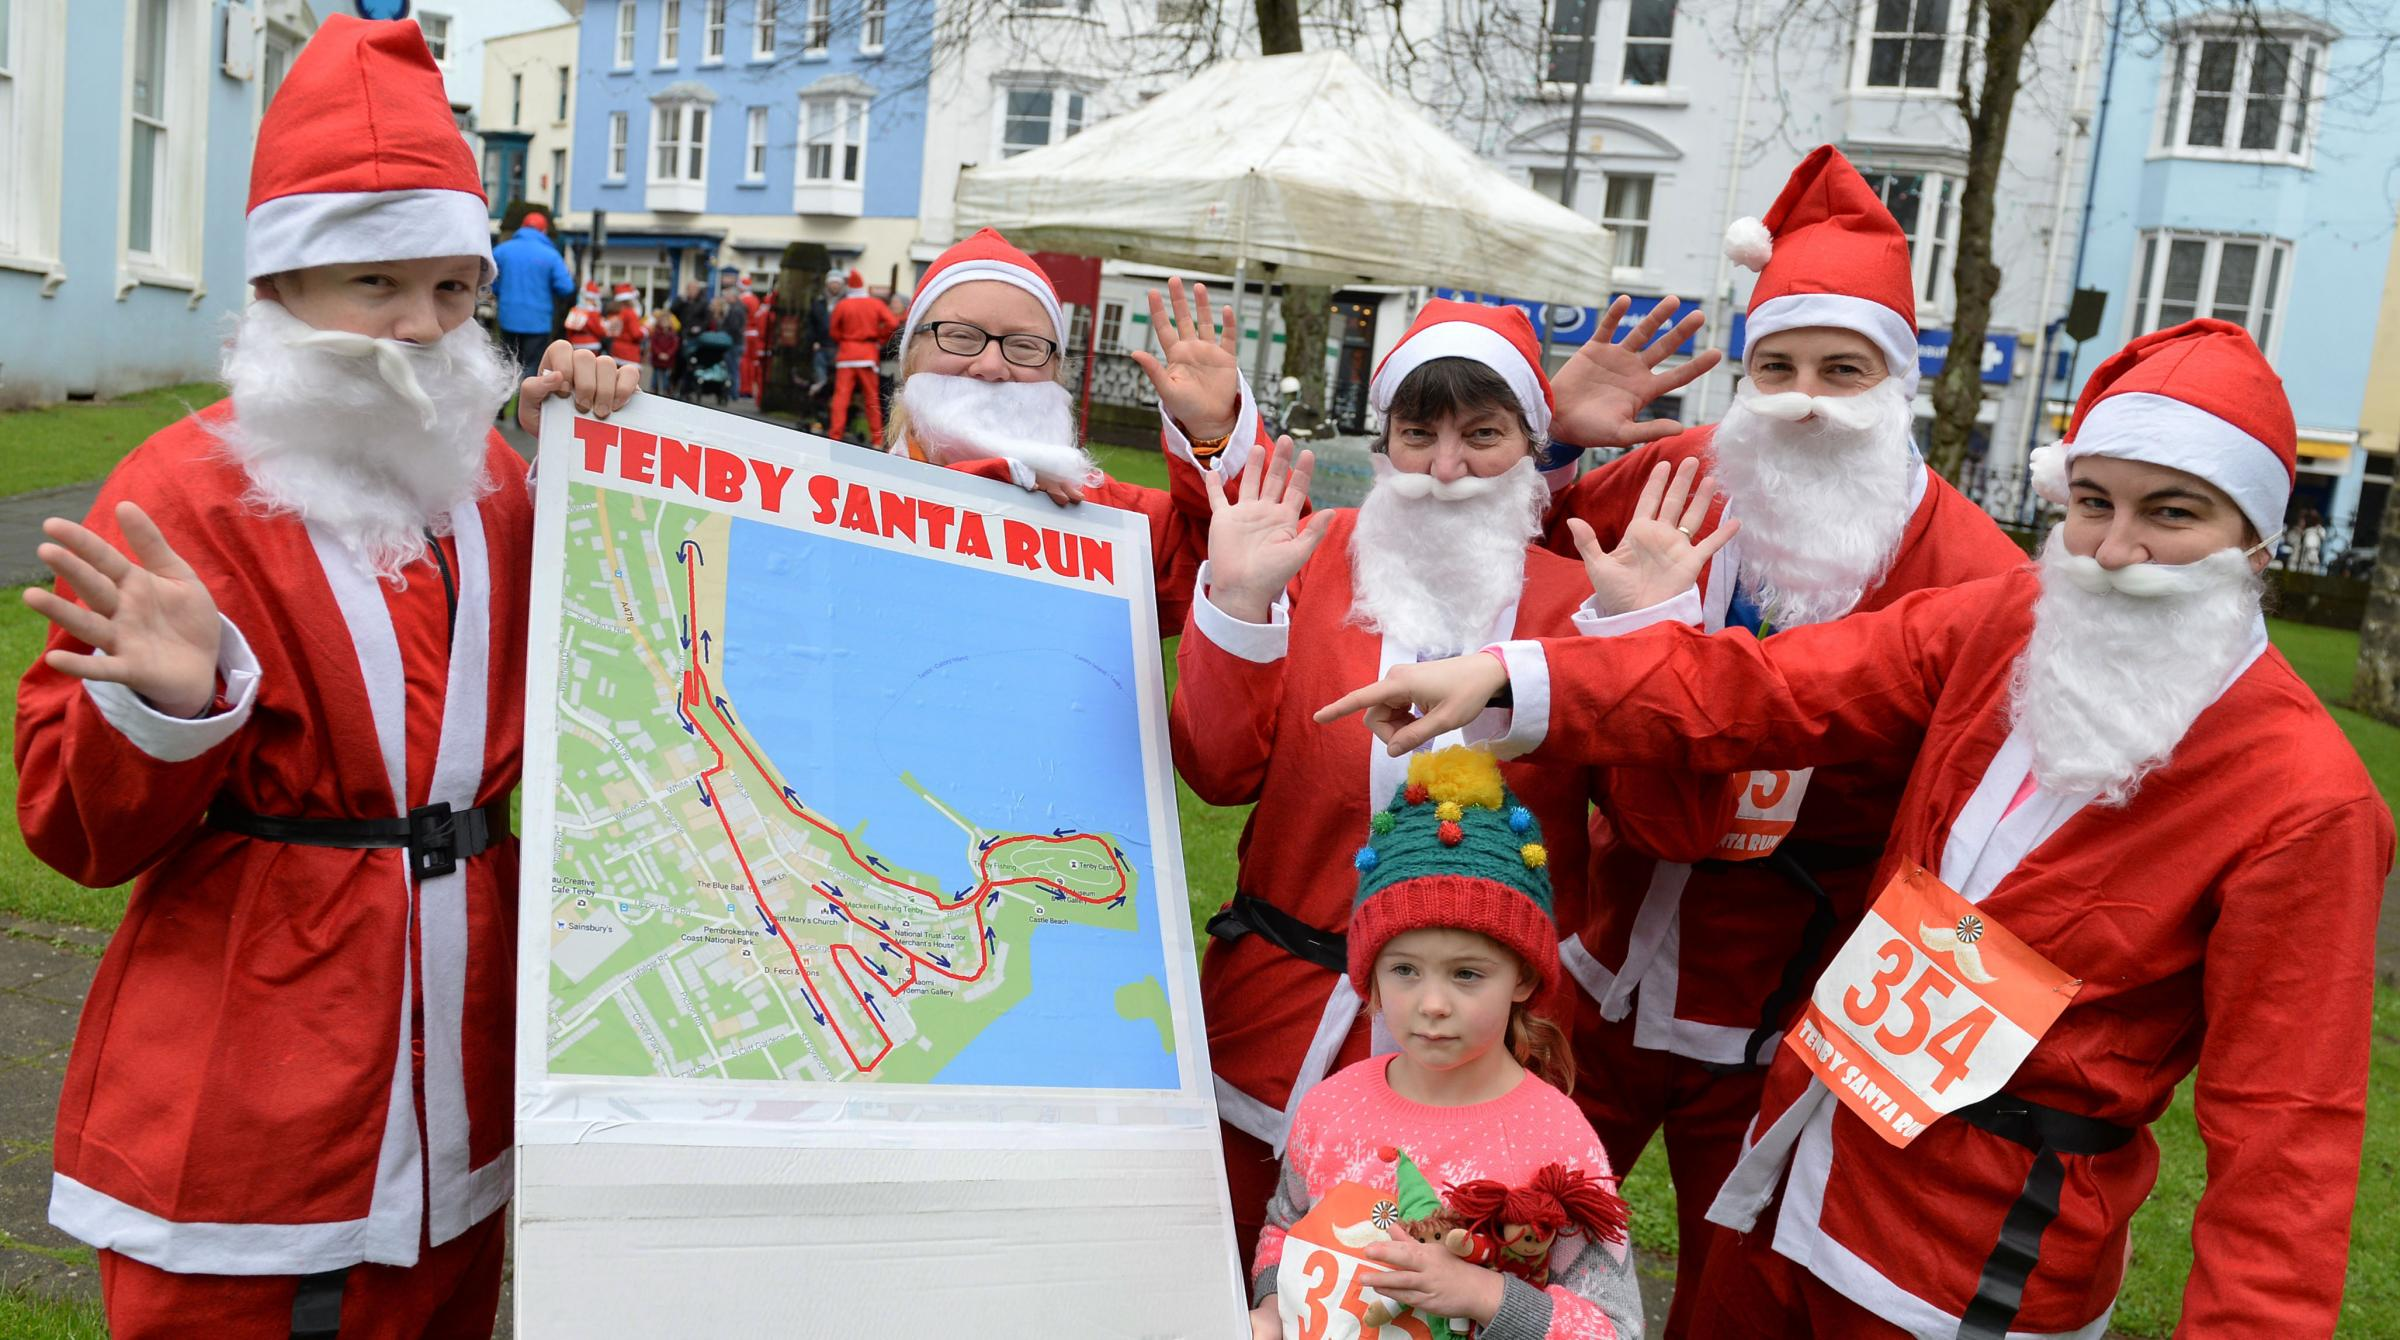 Get 'reddy' for Sunday's Tenby Santa Run! PICTURE: Gareth Davies Photography.